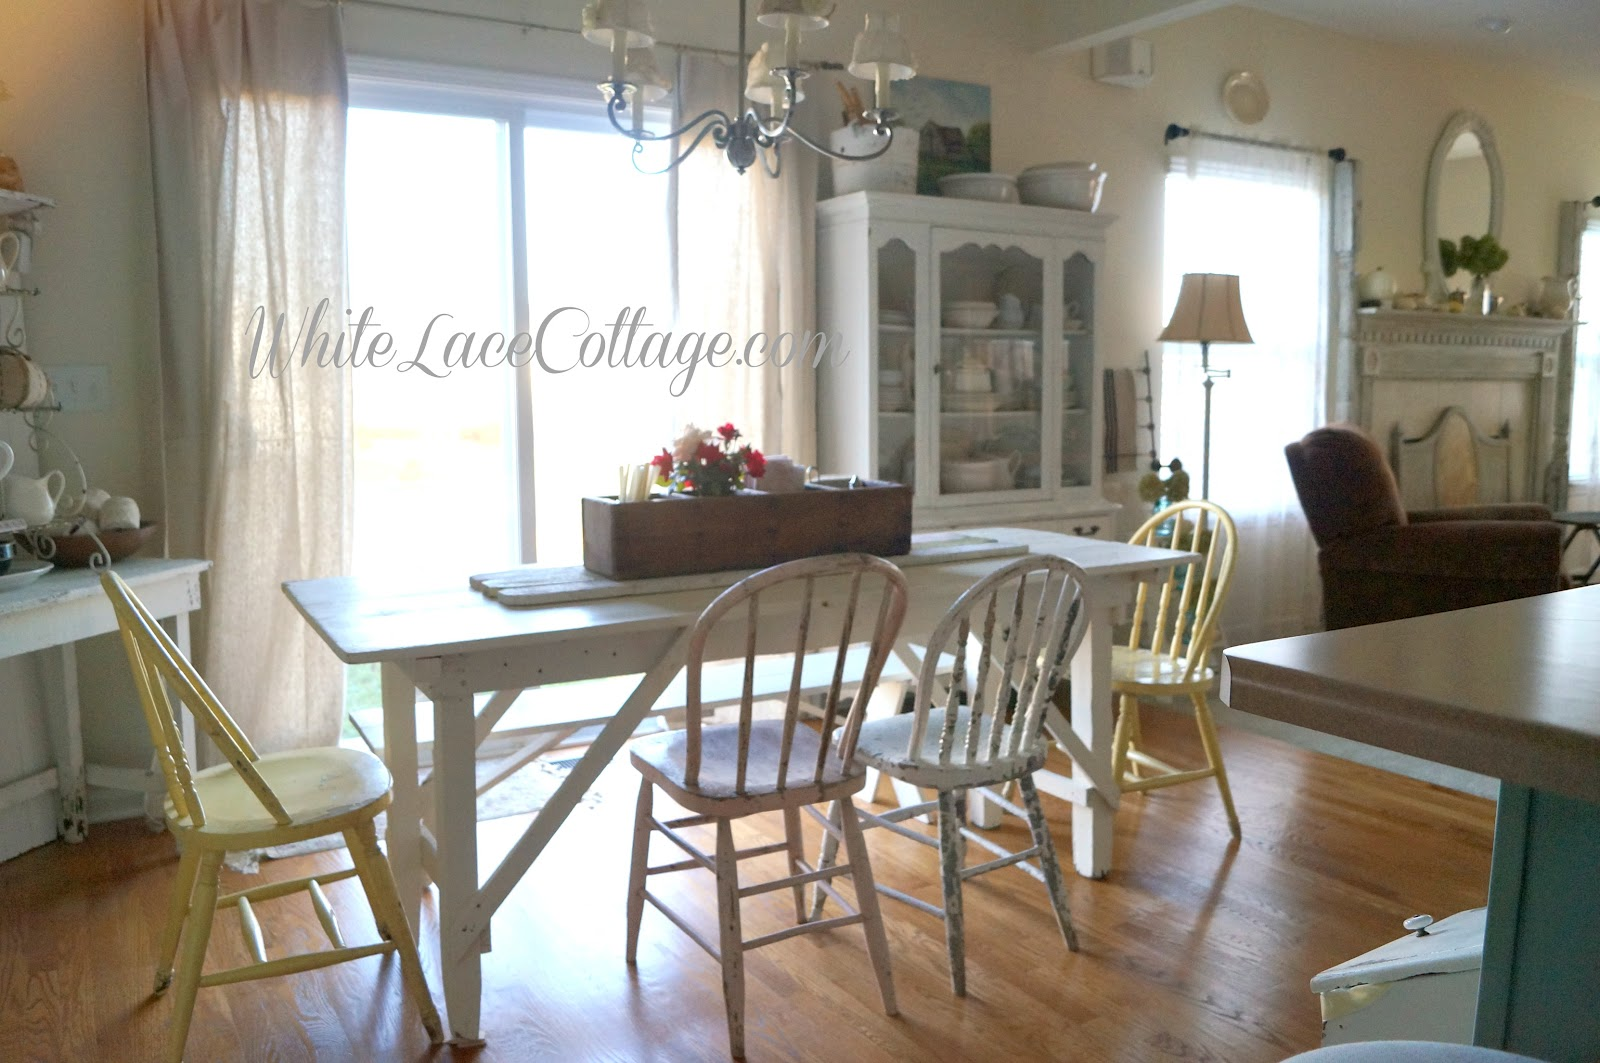 White Painted Table And Chairs Swivel Chair India Farmhouse Lace Cottage